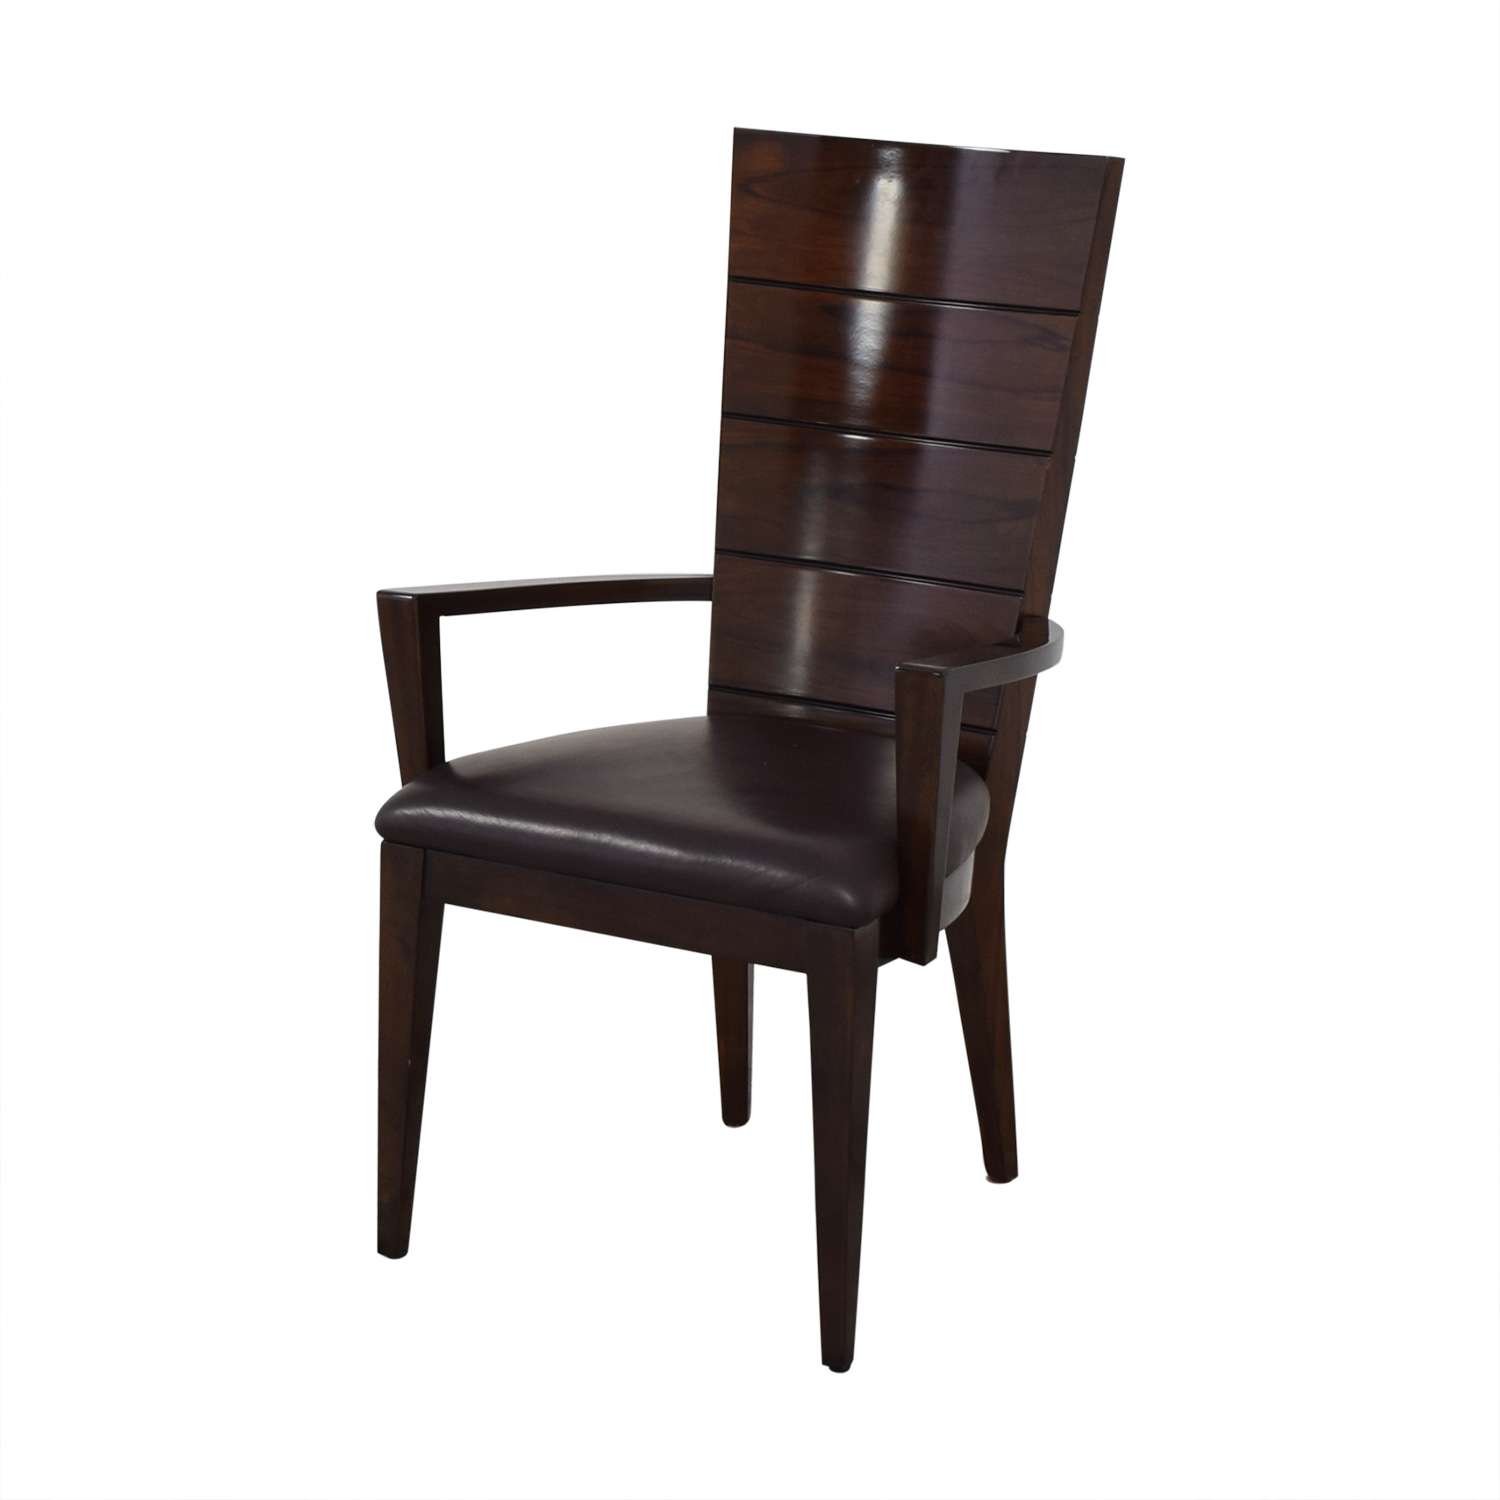 Elio Elio High Gloss Wood and Leather Chair on sale